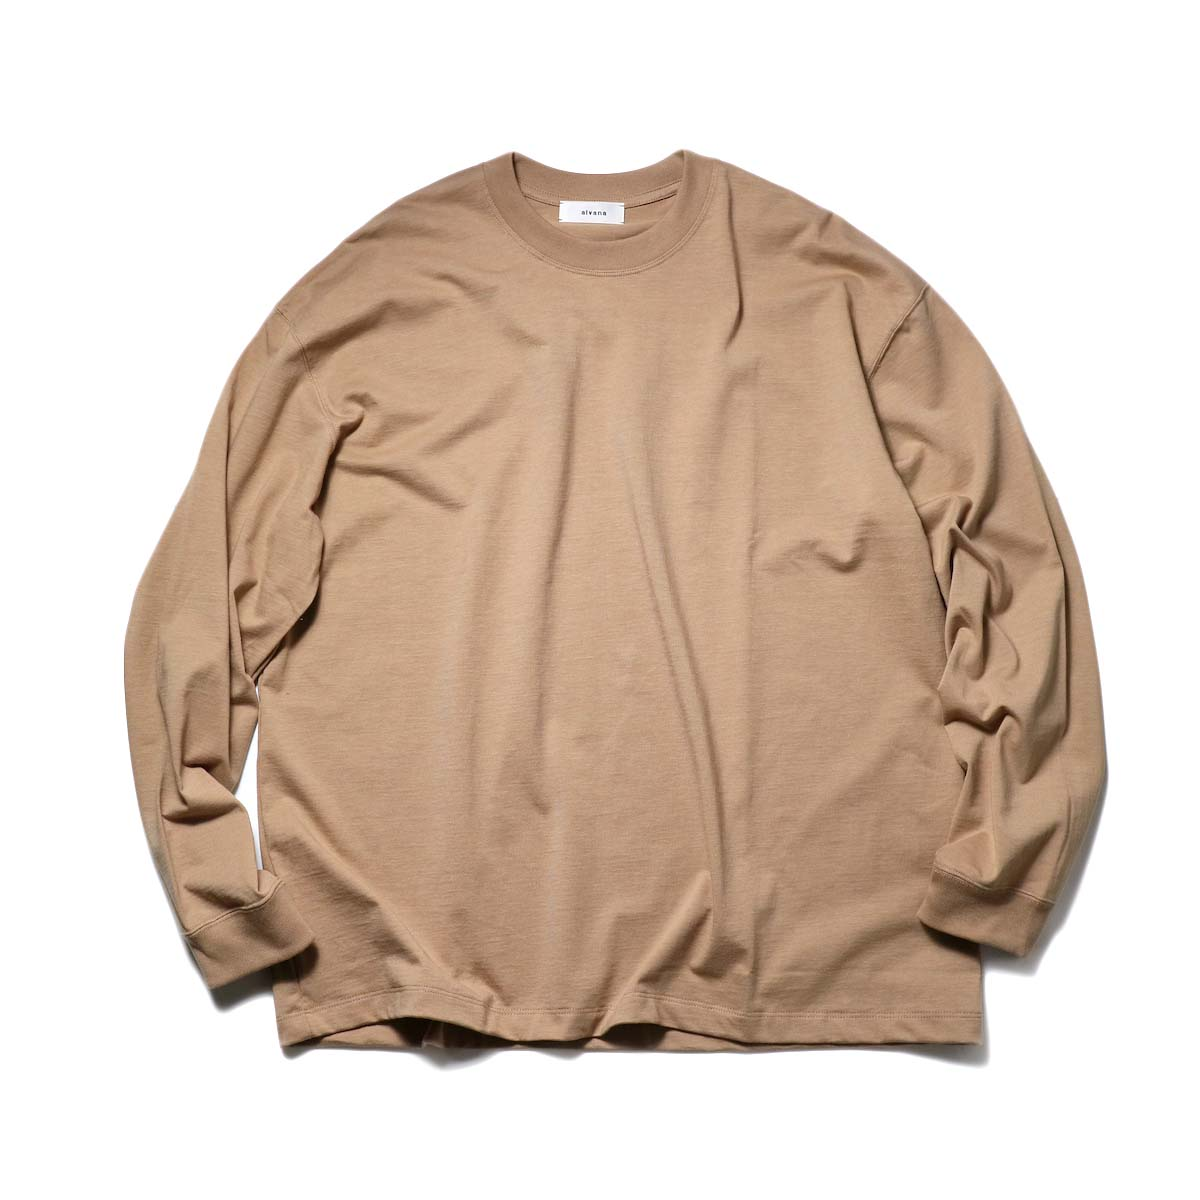 alvana / TANGUIS L/S TEE SHIRTS (Light Brown)